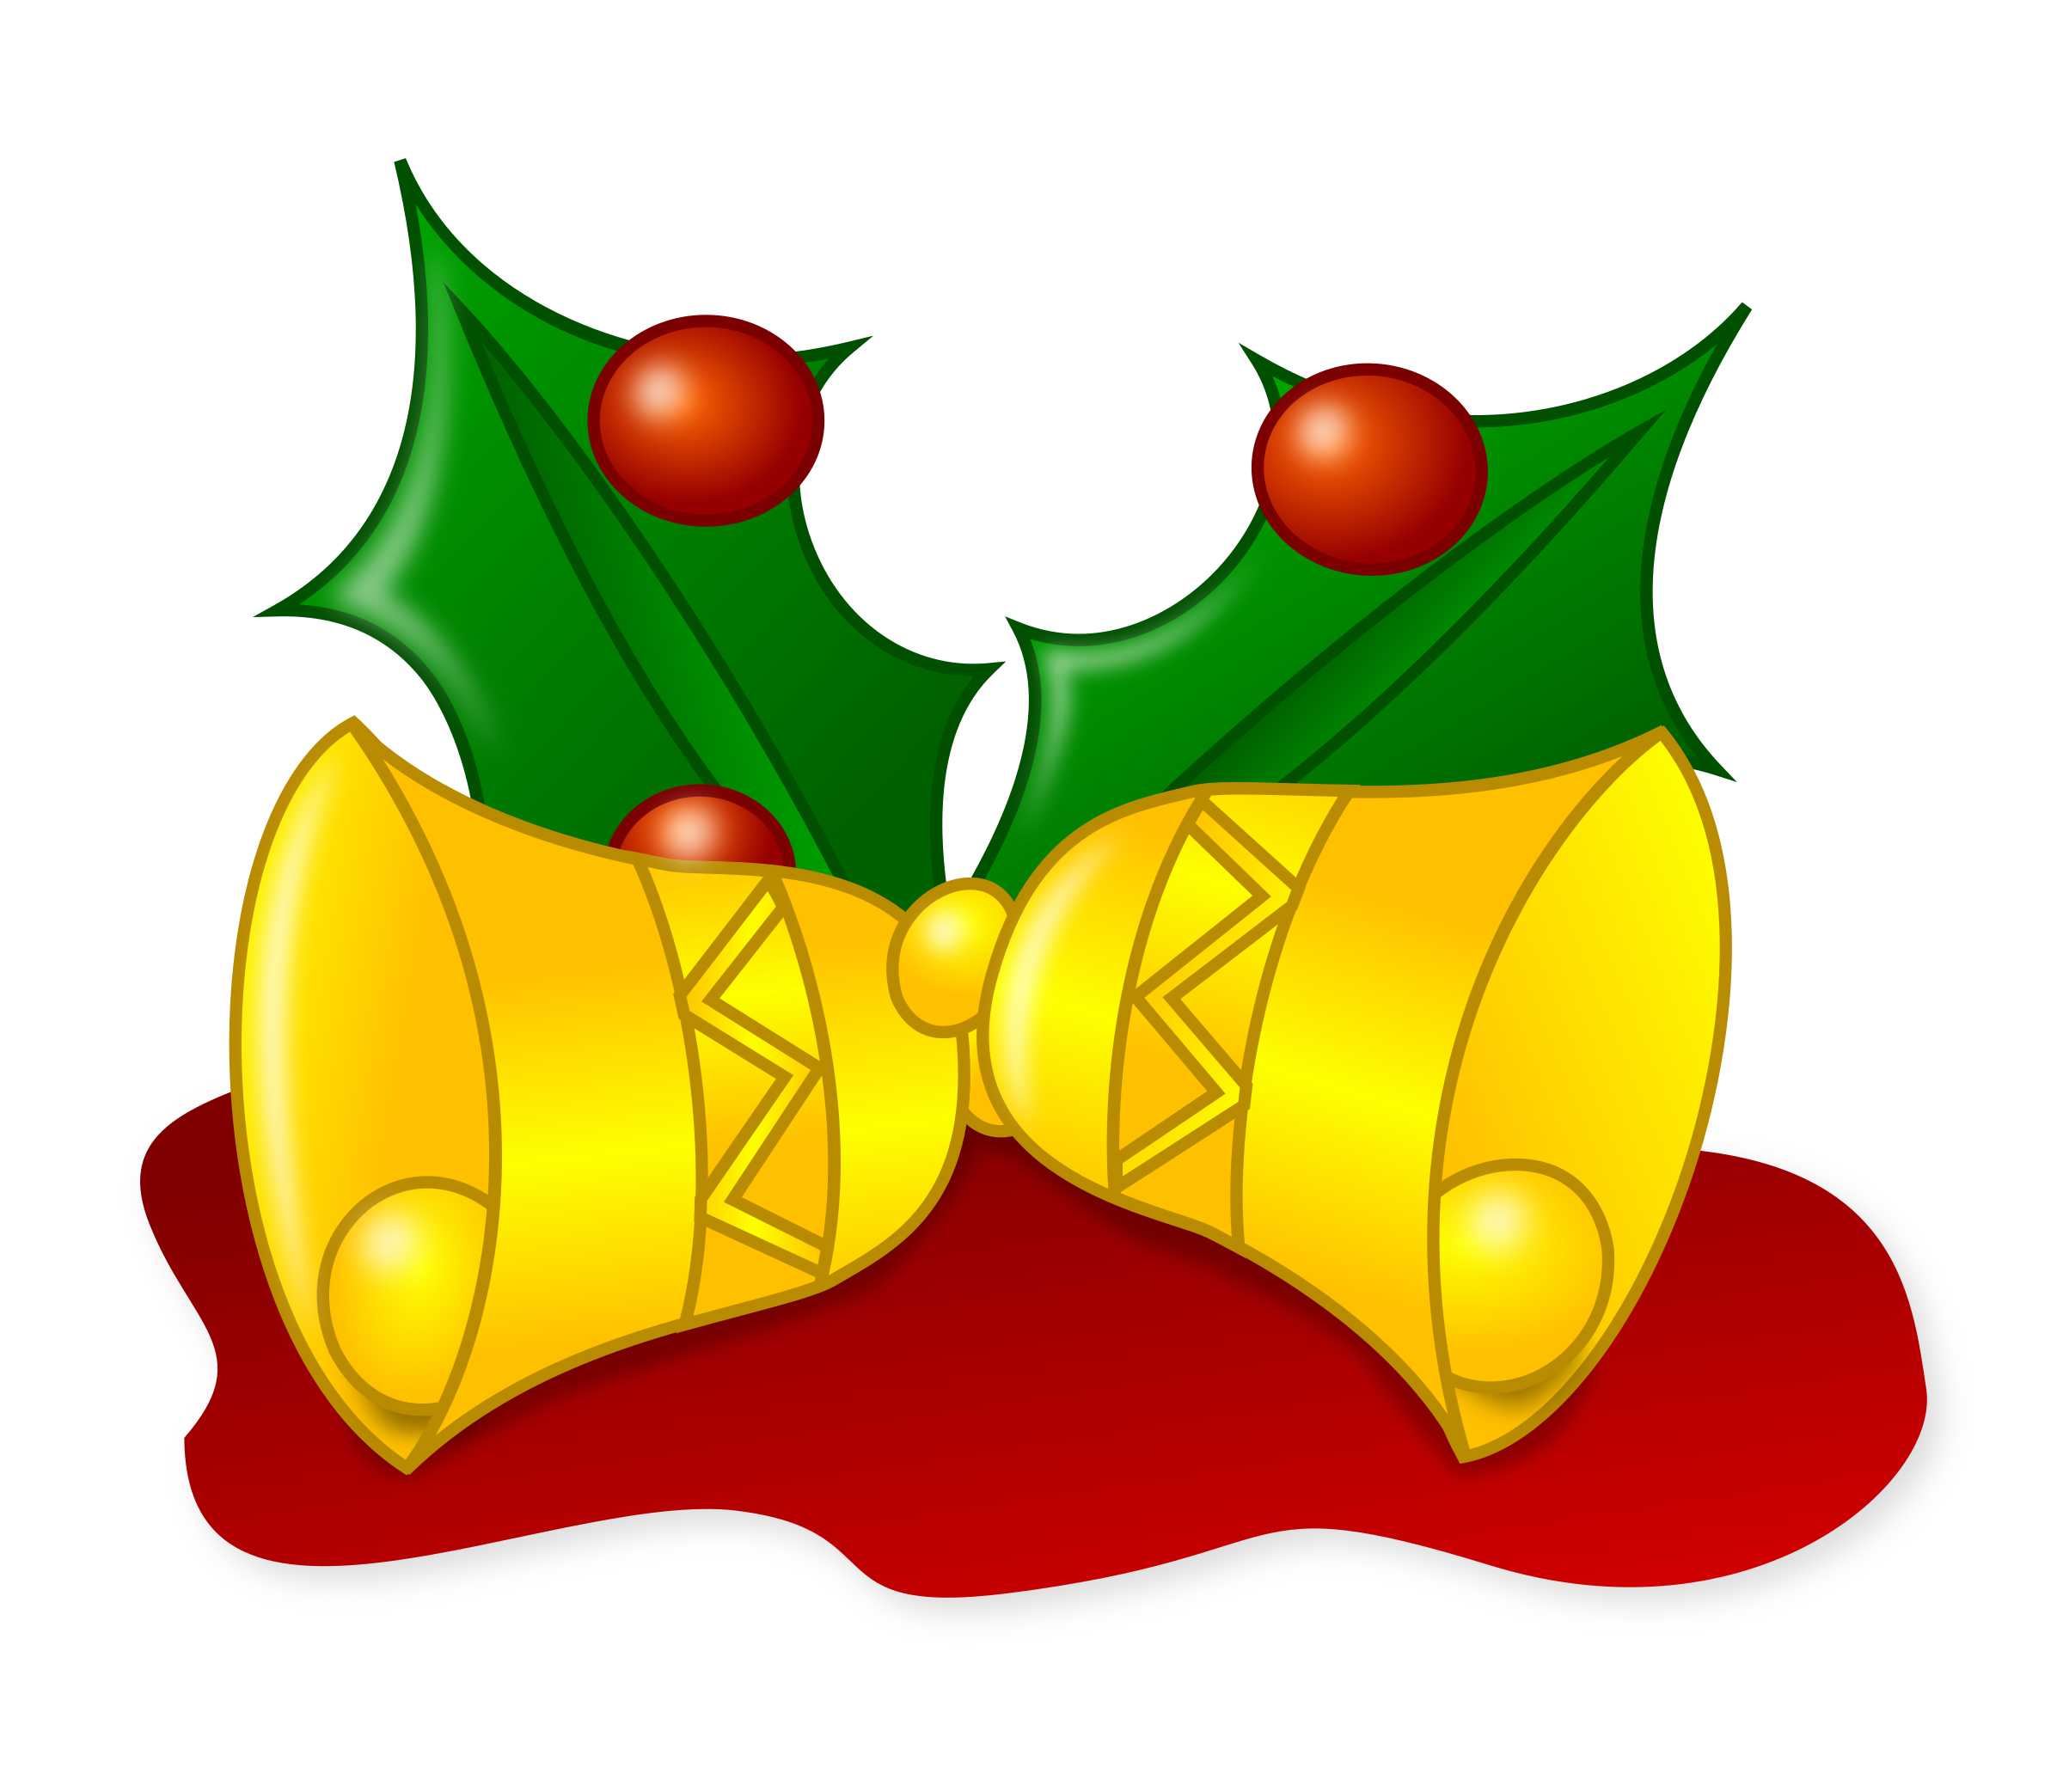 Christmas jingle bell clipart clip art royalty free download Clipart - Colored: Jingle Bells clip art royalty free download